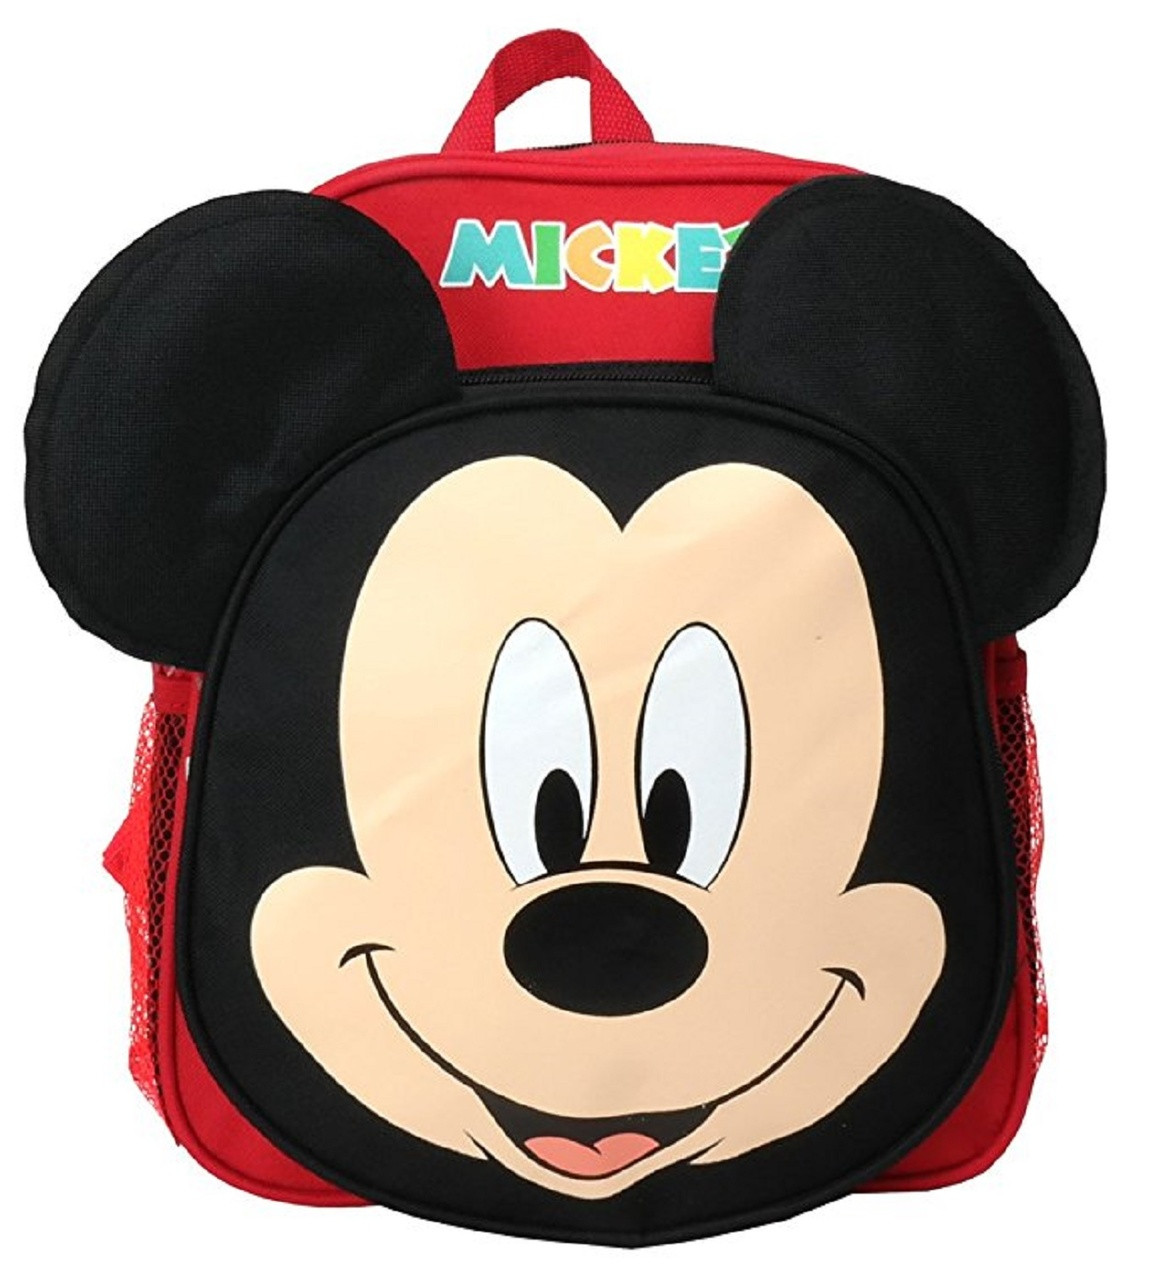 Backpack - Mickey Mouse - Small 12 Inch - Face